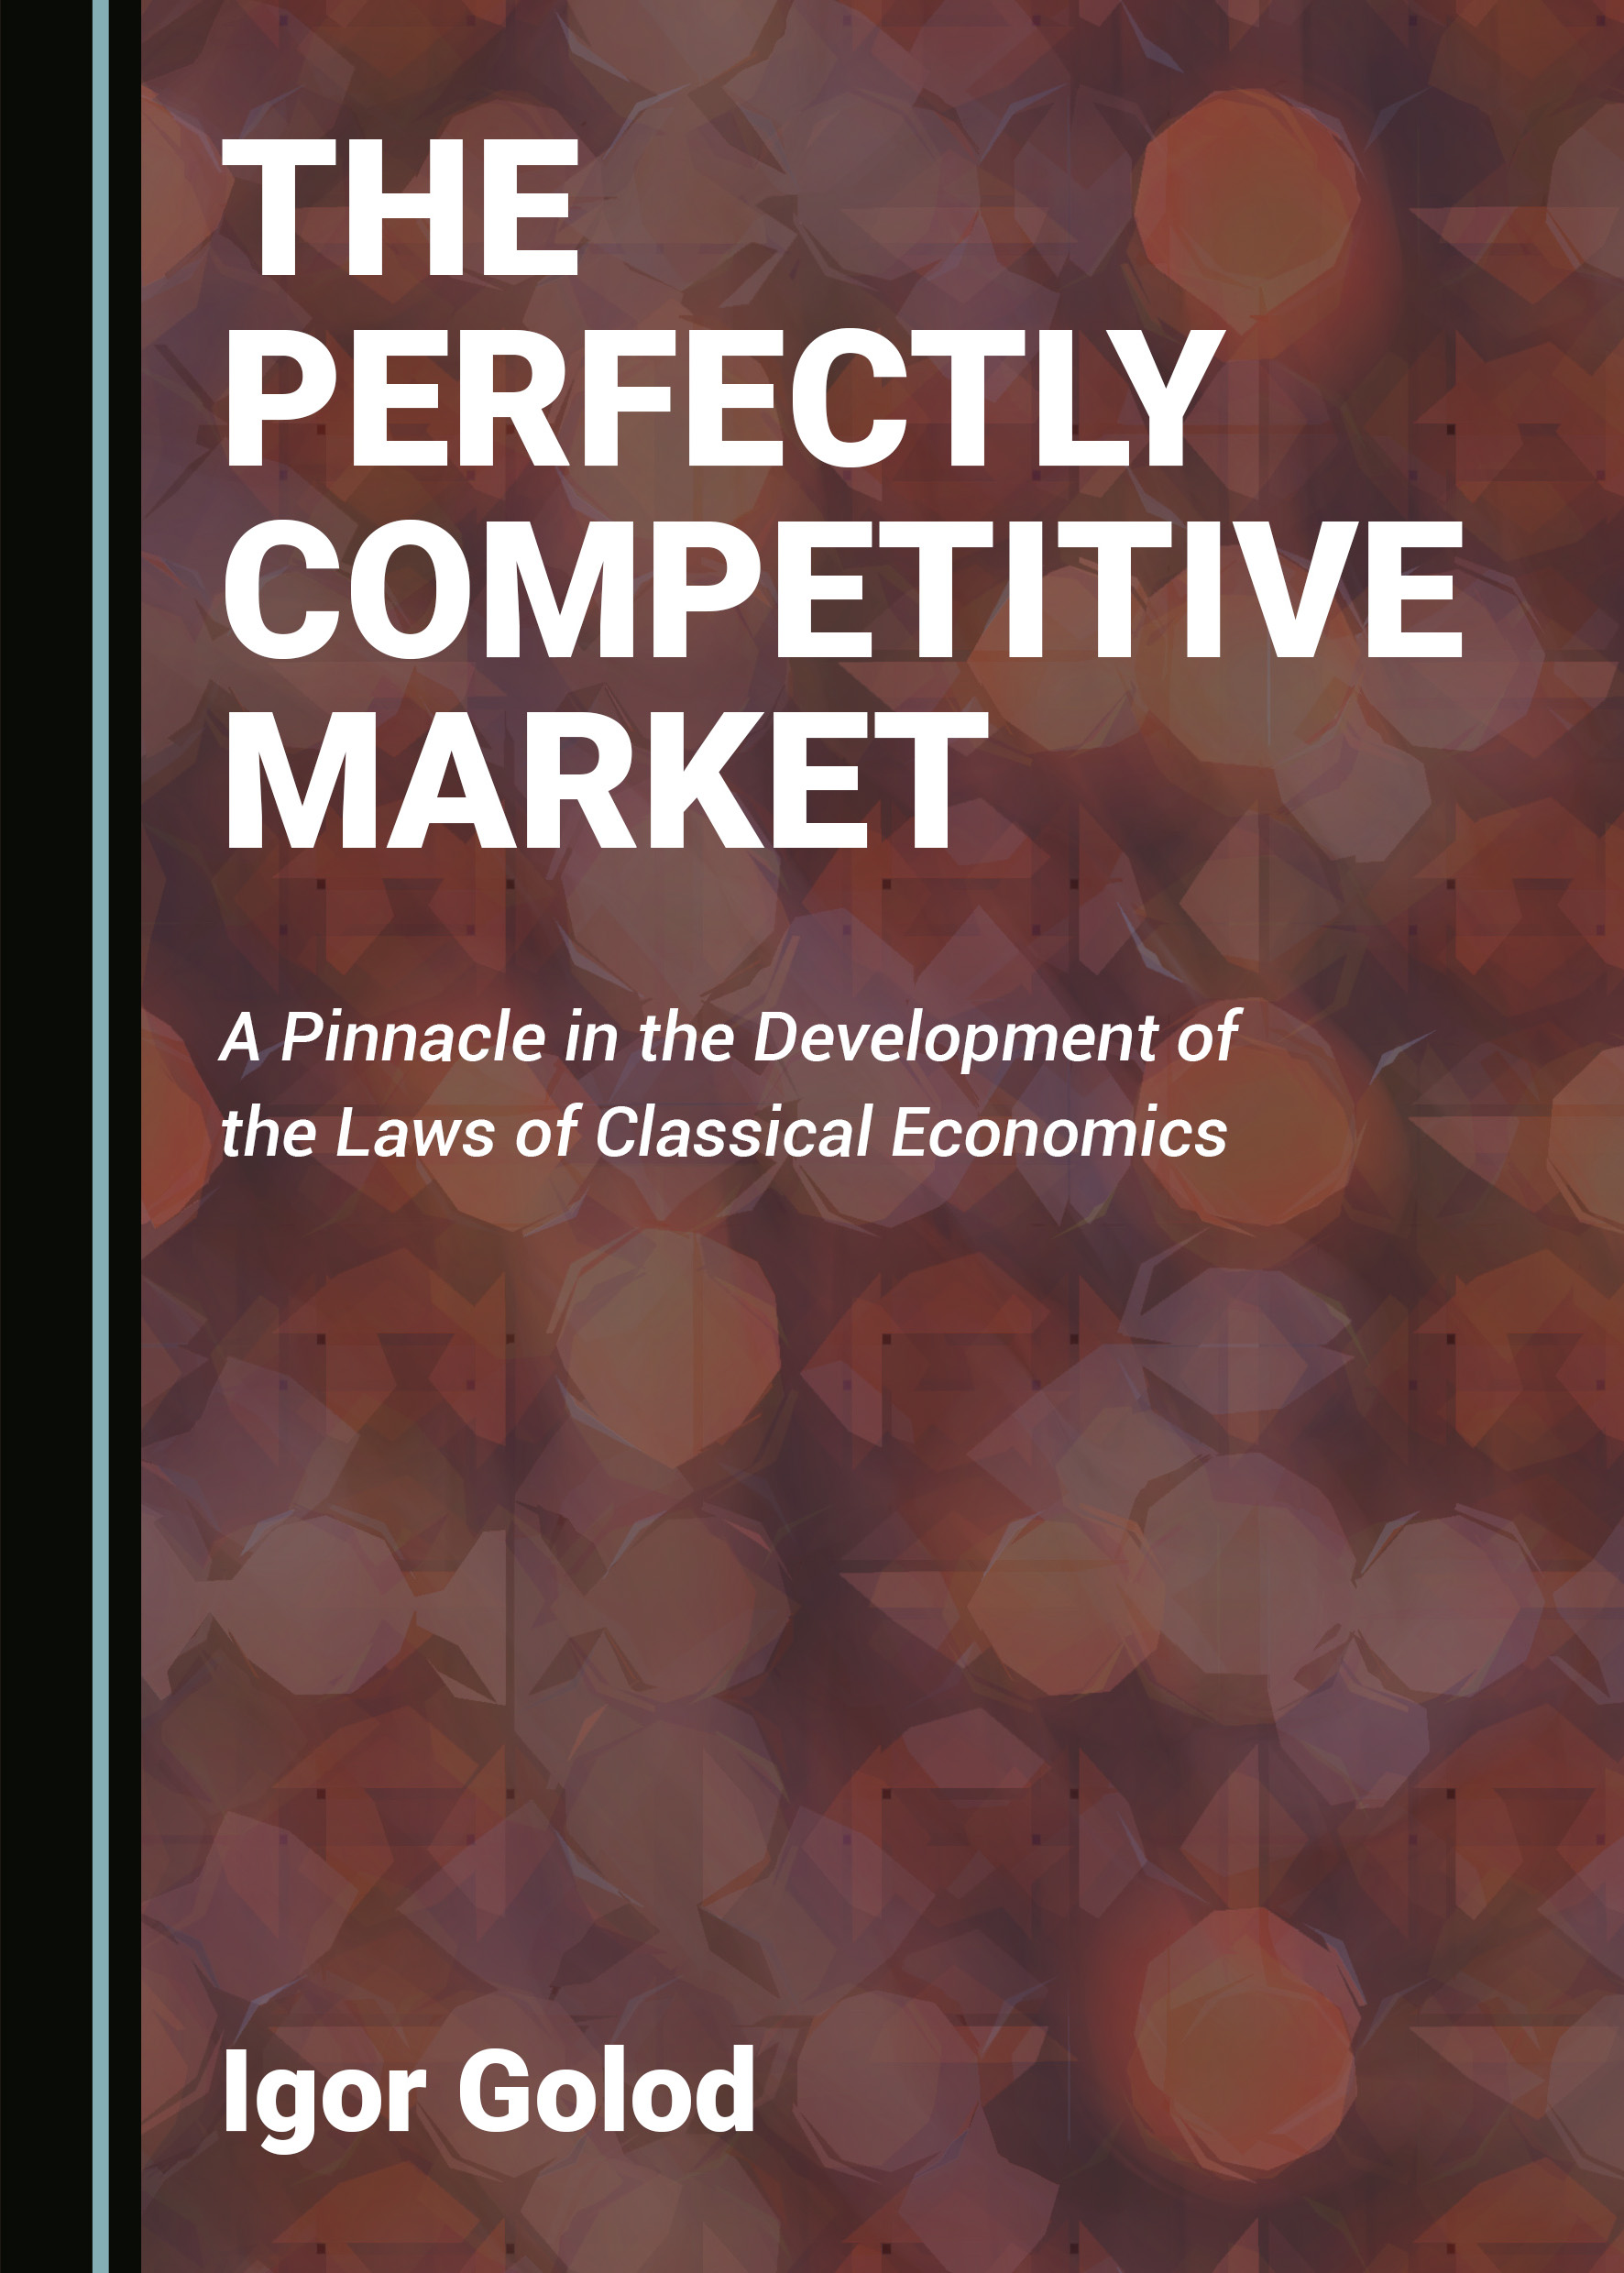 The Perfectly Competitive Market: A Pinnacle in the Development of the Laws of Classical Economics